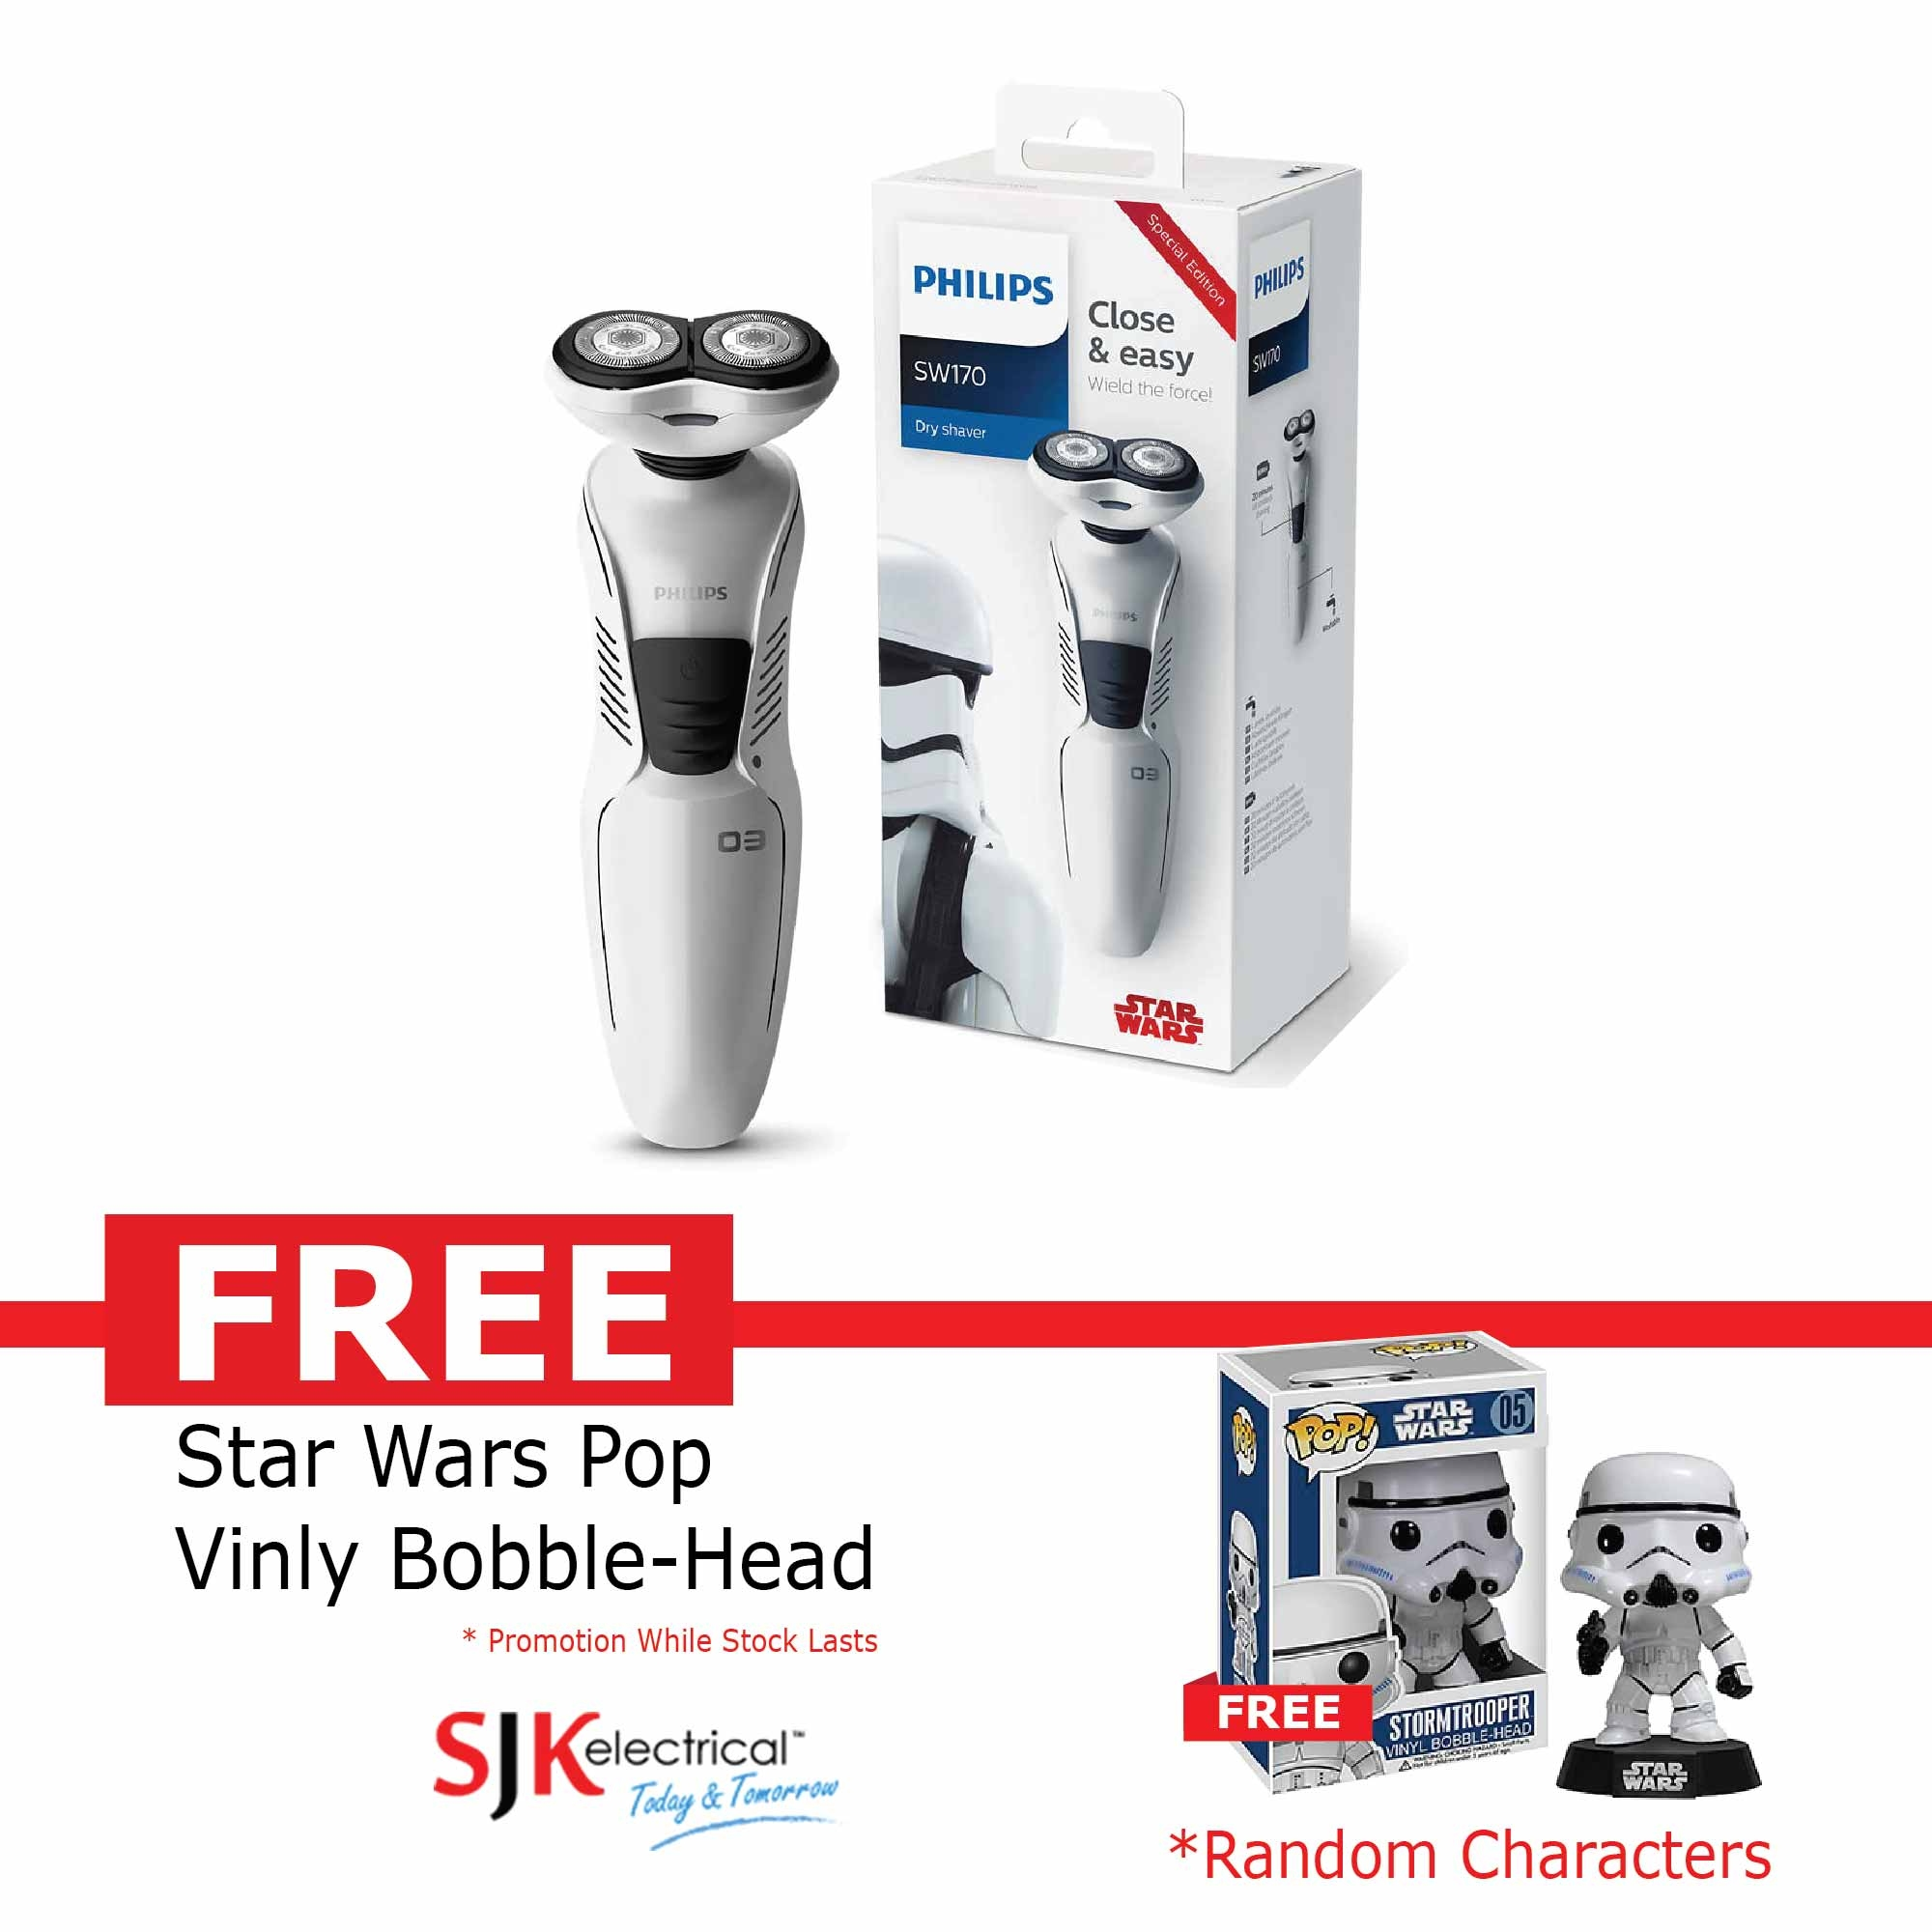 Philips Shaver Price Harga In Malaysia Lelong Pq206 Star Wars Sw170 Limited Edition Stormtroope